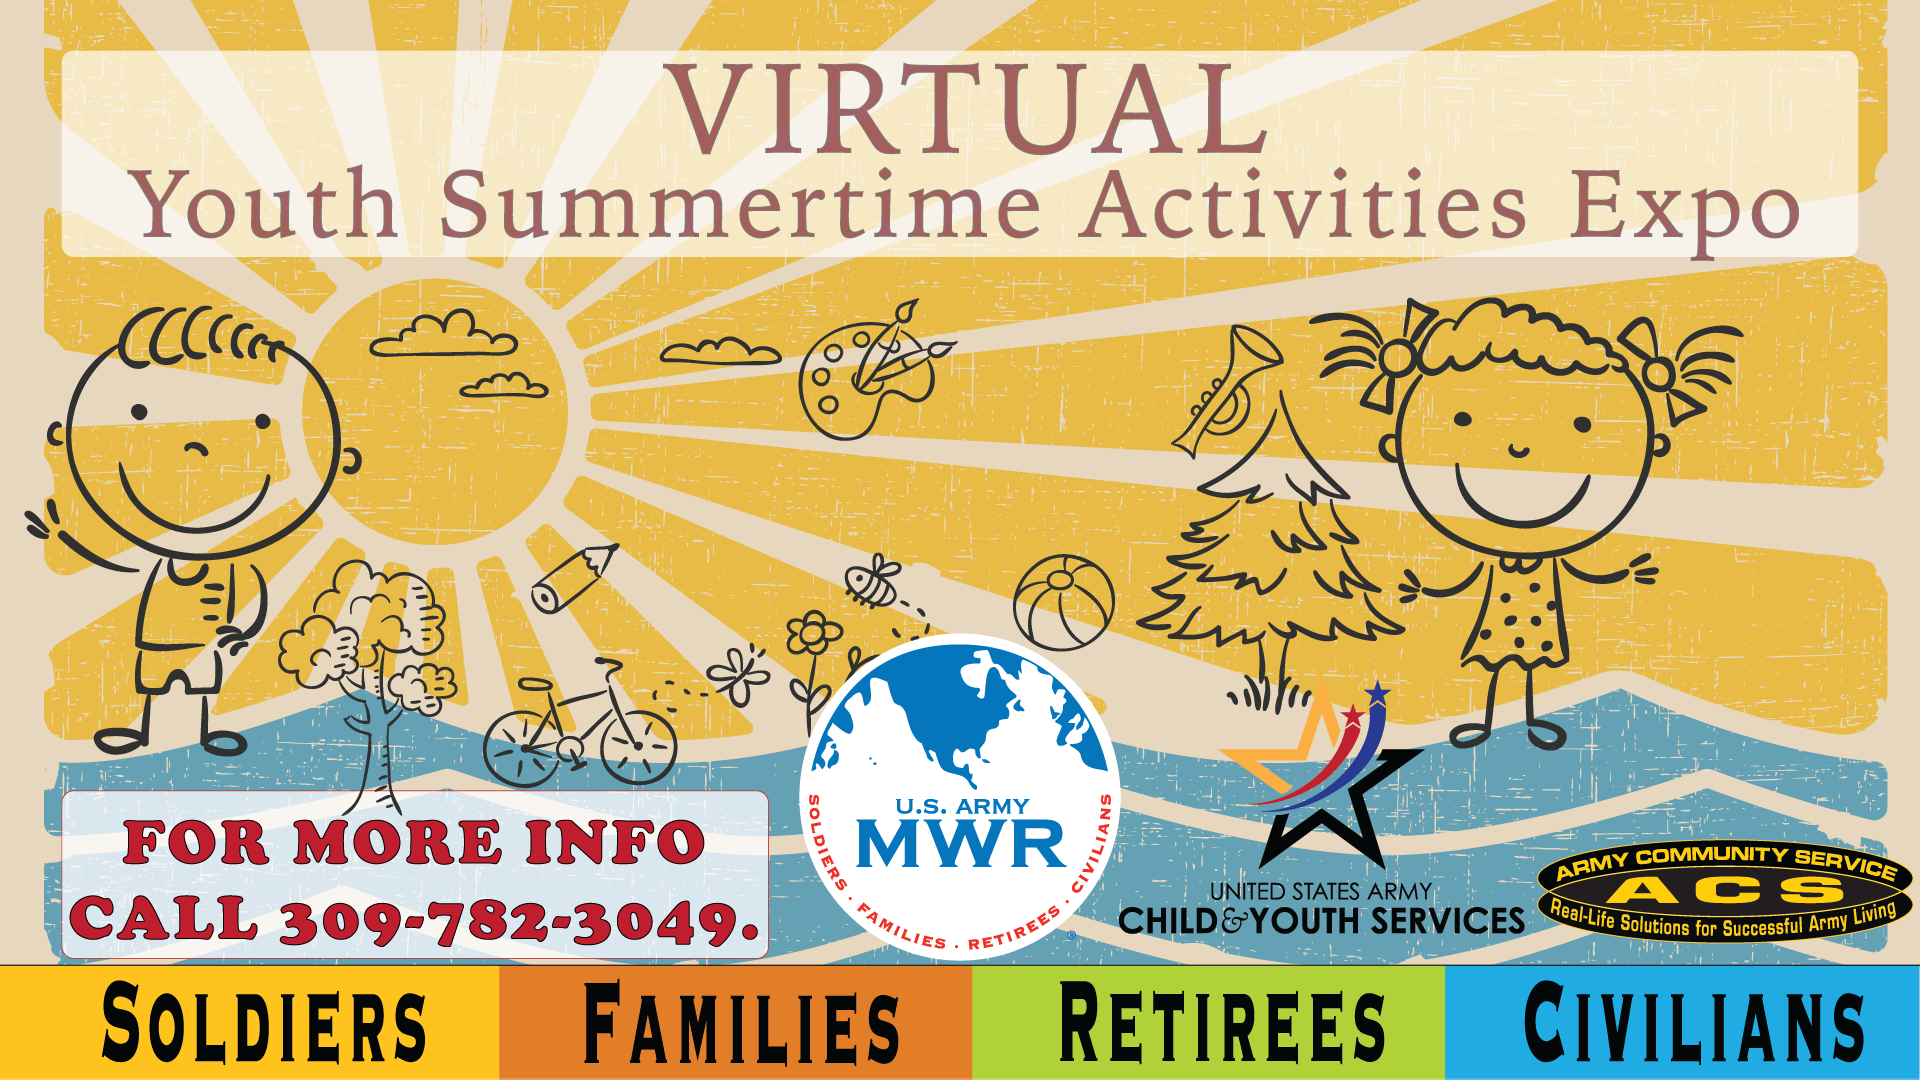 Virtual Youth Summertime Activities Expo